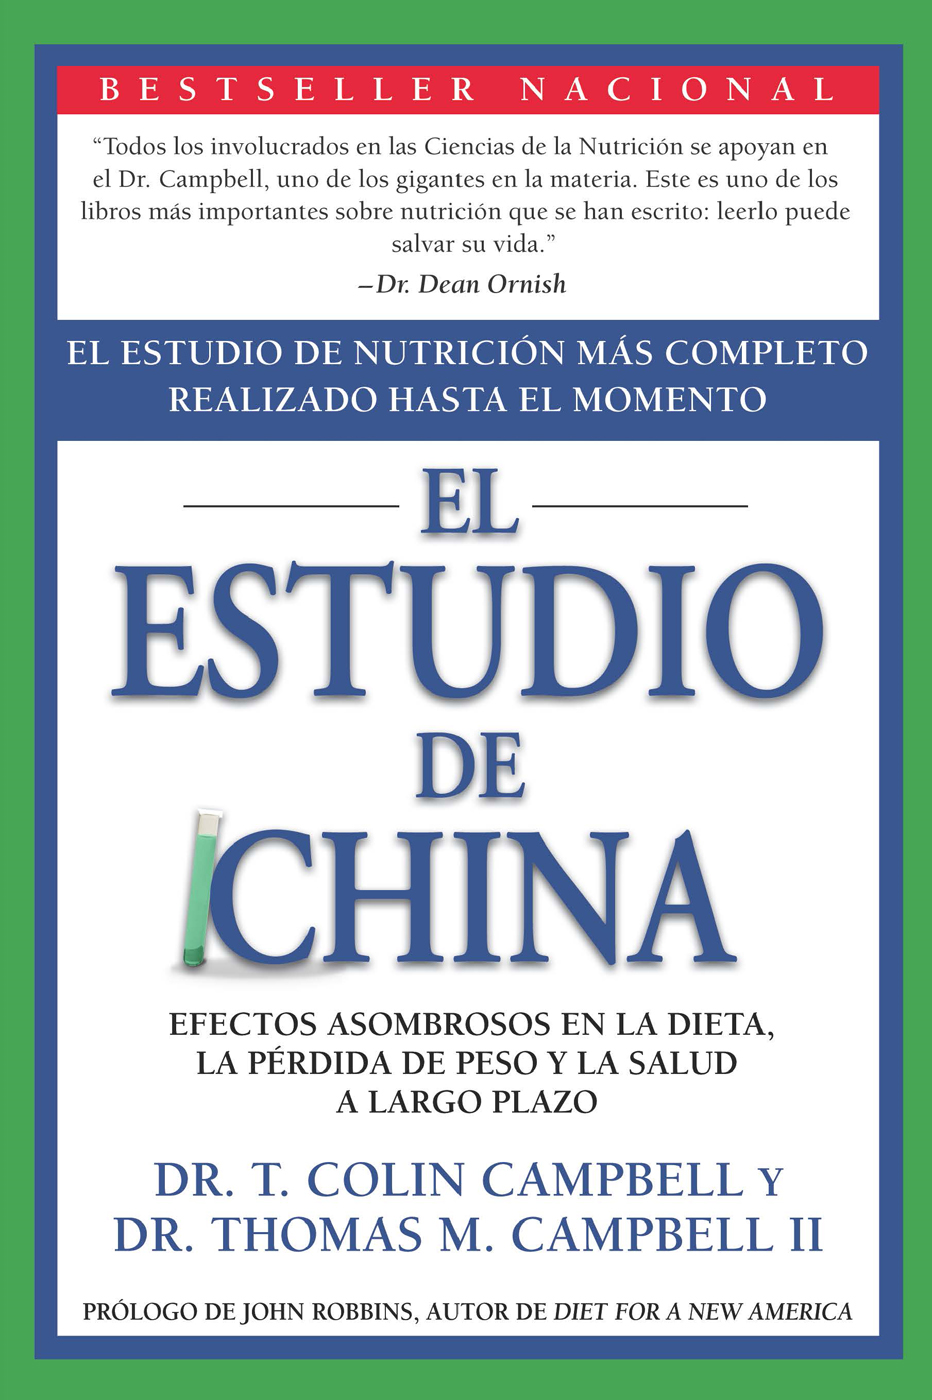 El Estudio de China